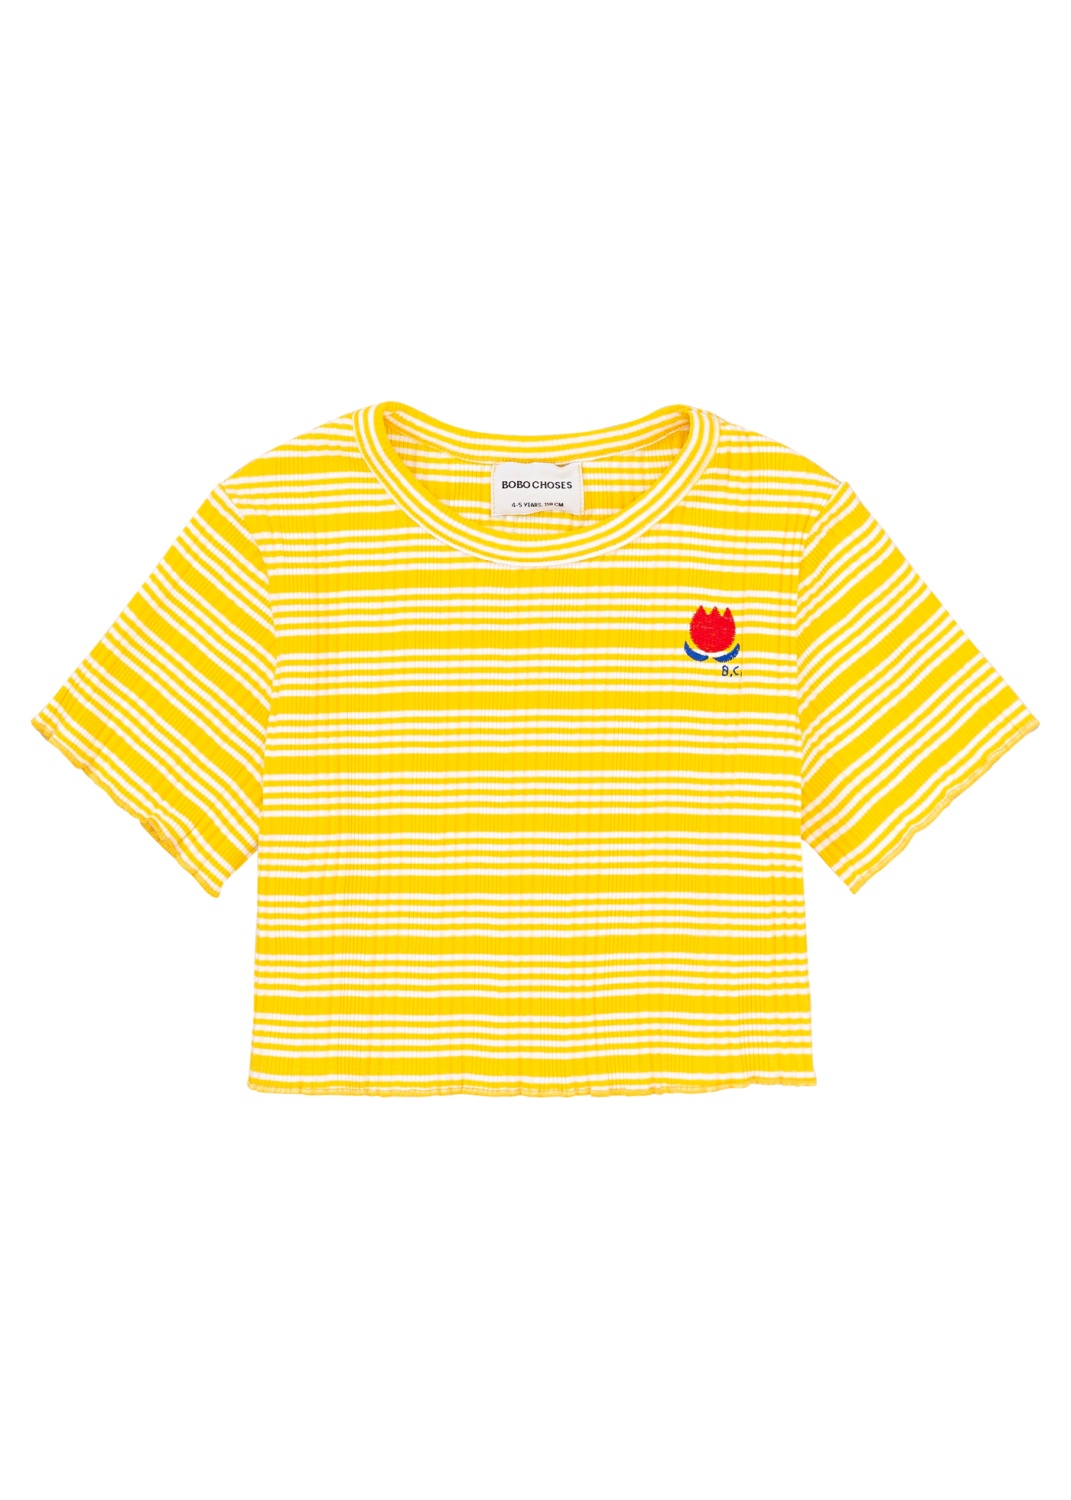 Flower Embroidery Shirt image number 0